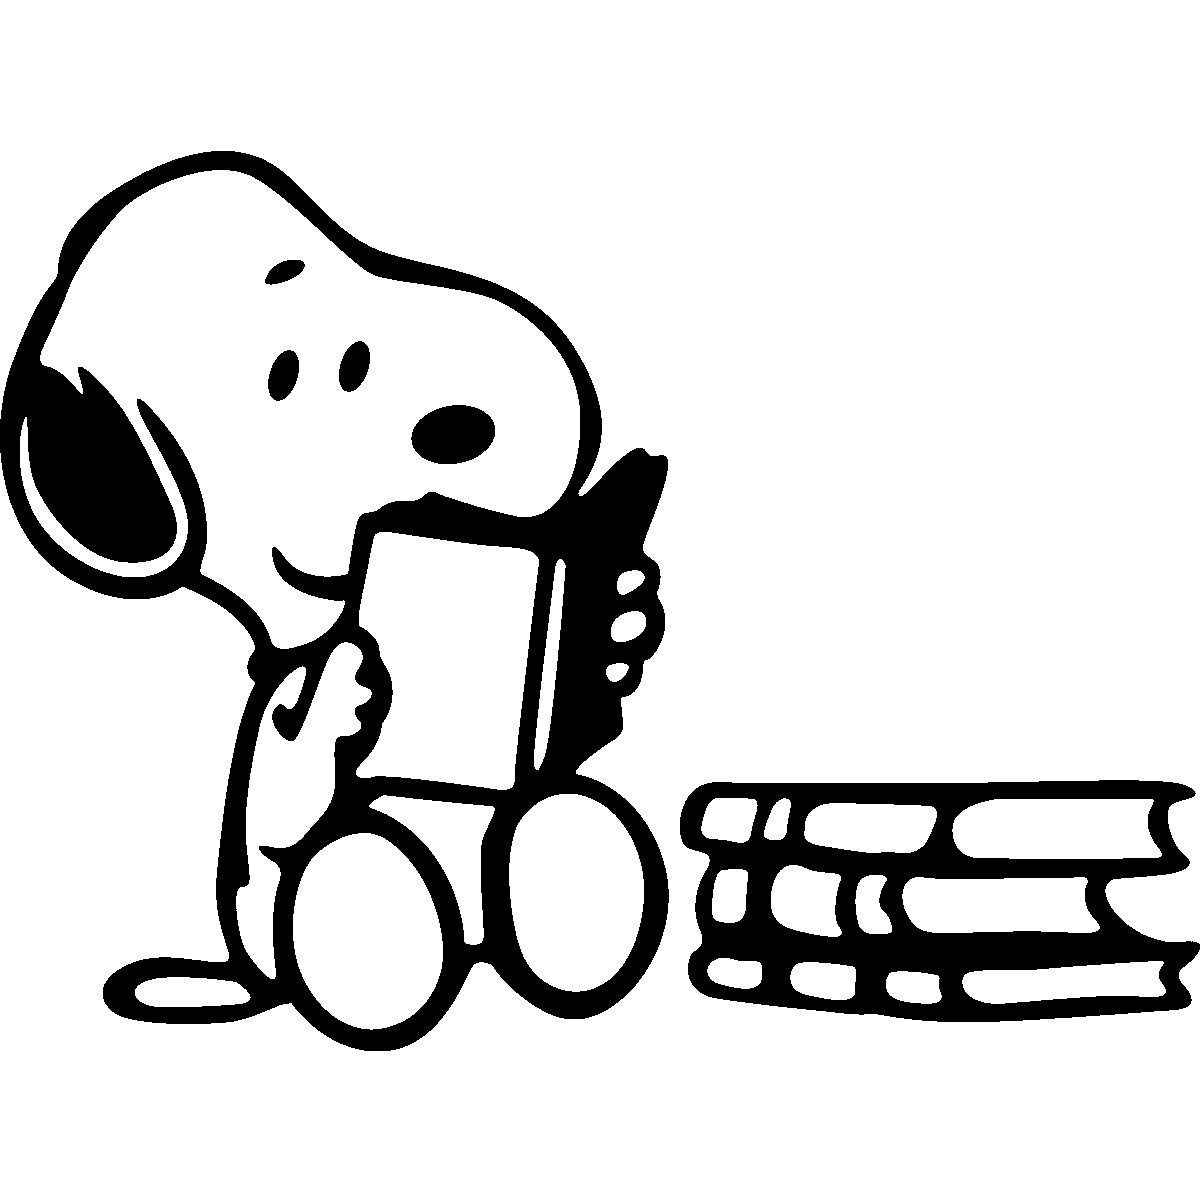 Urban Wall Stickers Pc And Mac Laptop Skins Skin Snoopy Reading A Book